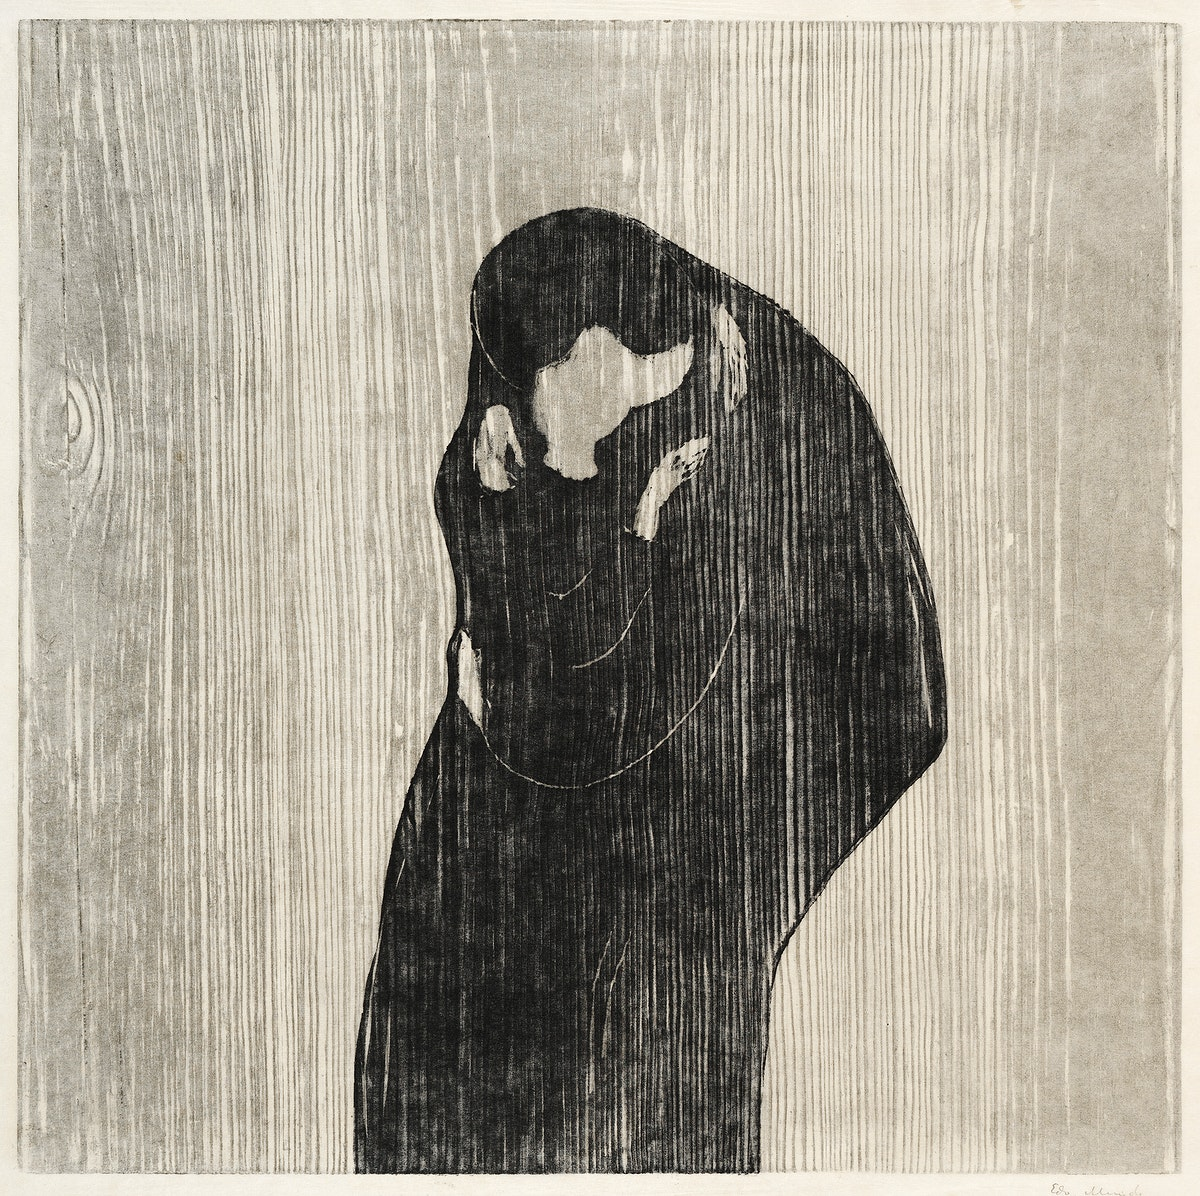 The Kiss IV (1902) by Edvard Munch. Original from The MET Museum. Digitally enhanced by rawpixel.